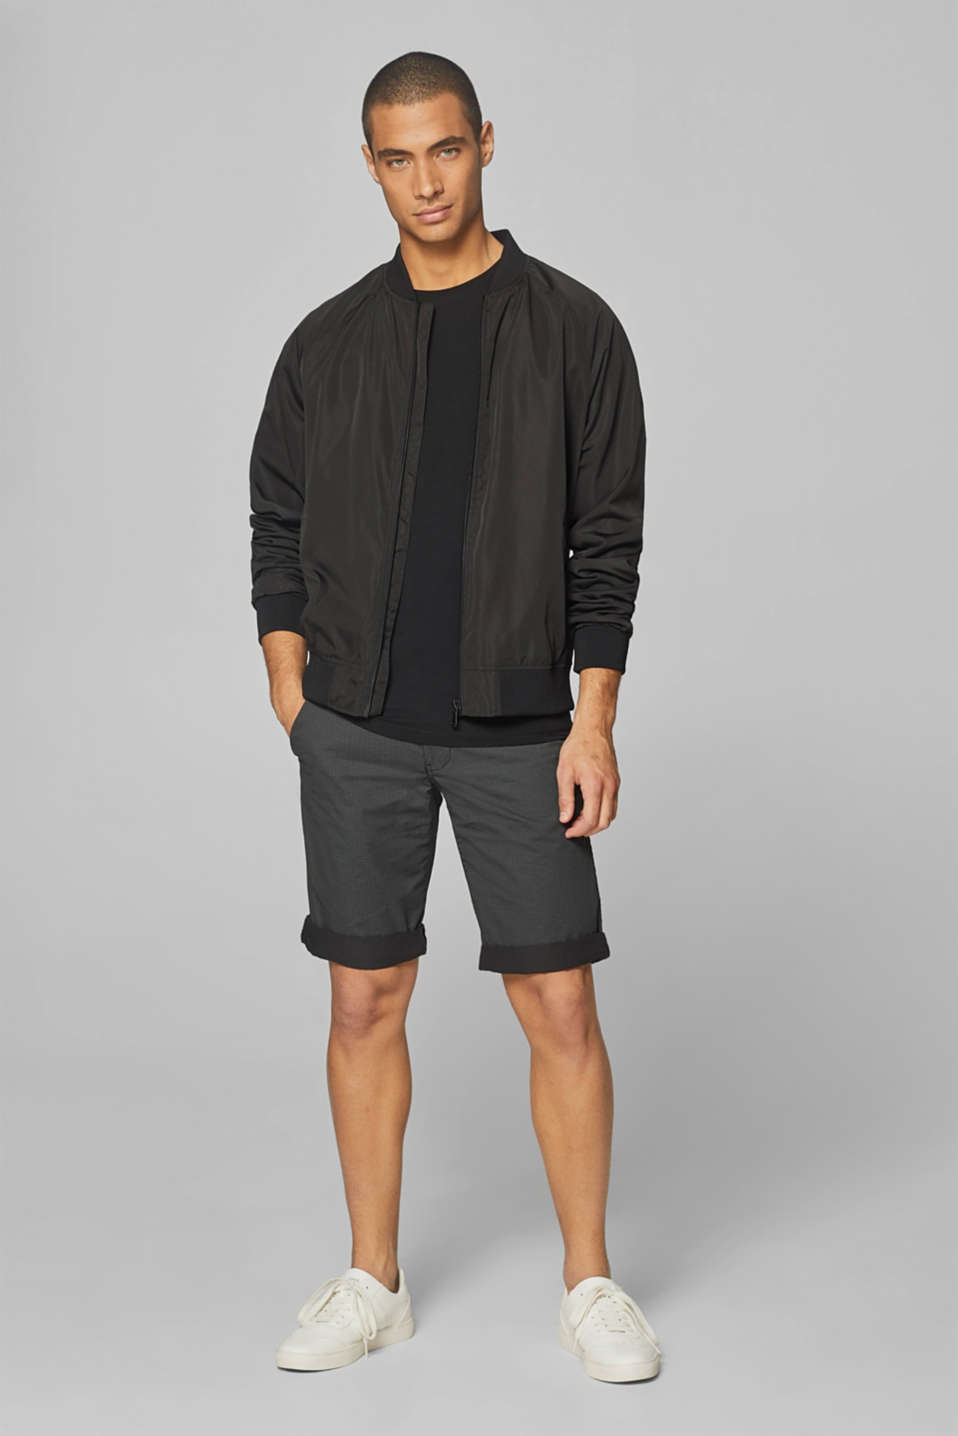 Shorts woven Slim fit, ANTHRACITE, detail image number 1